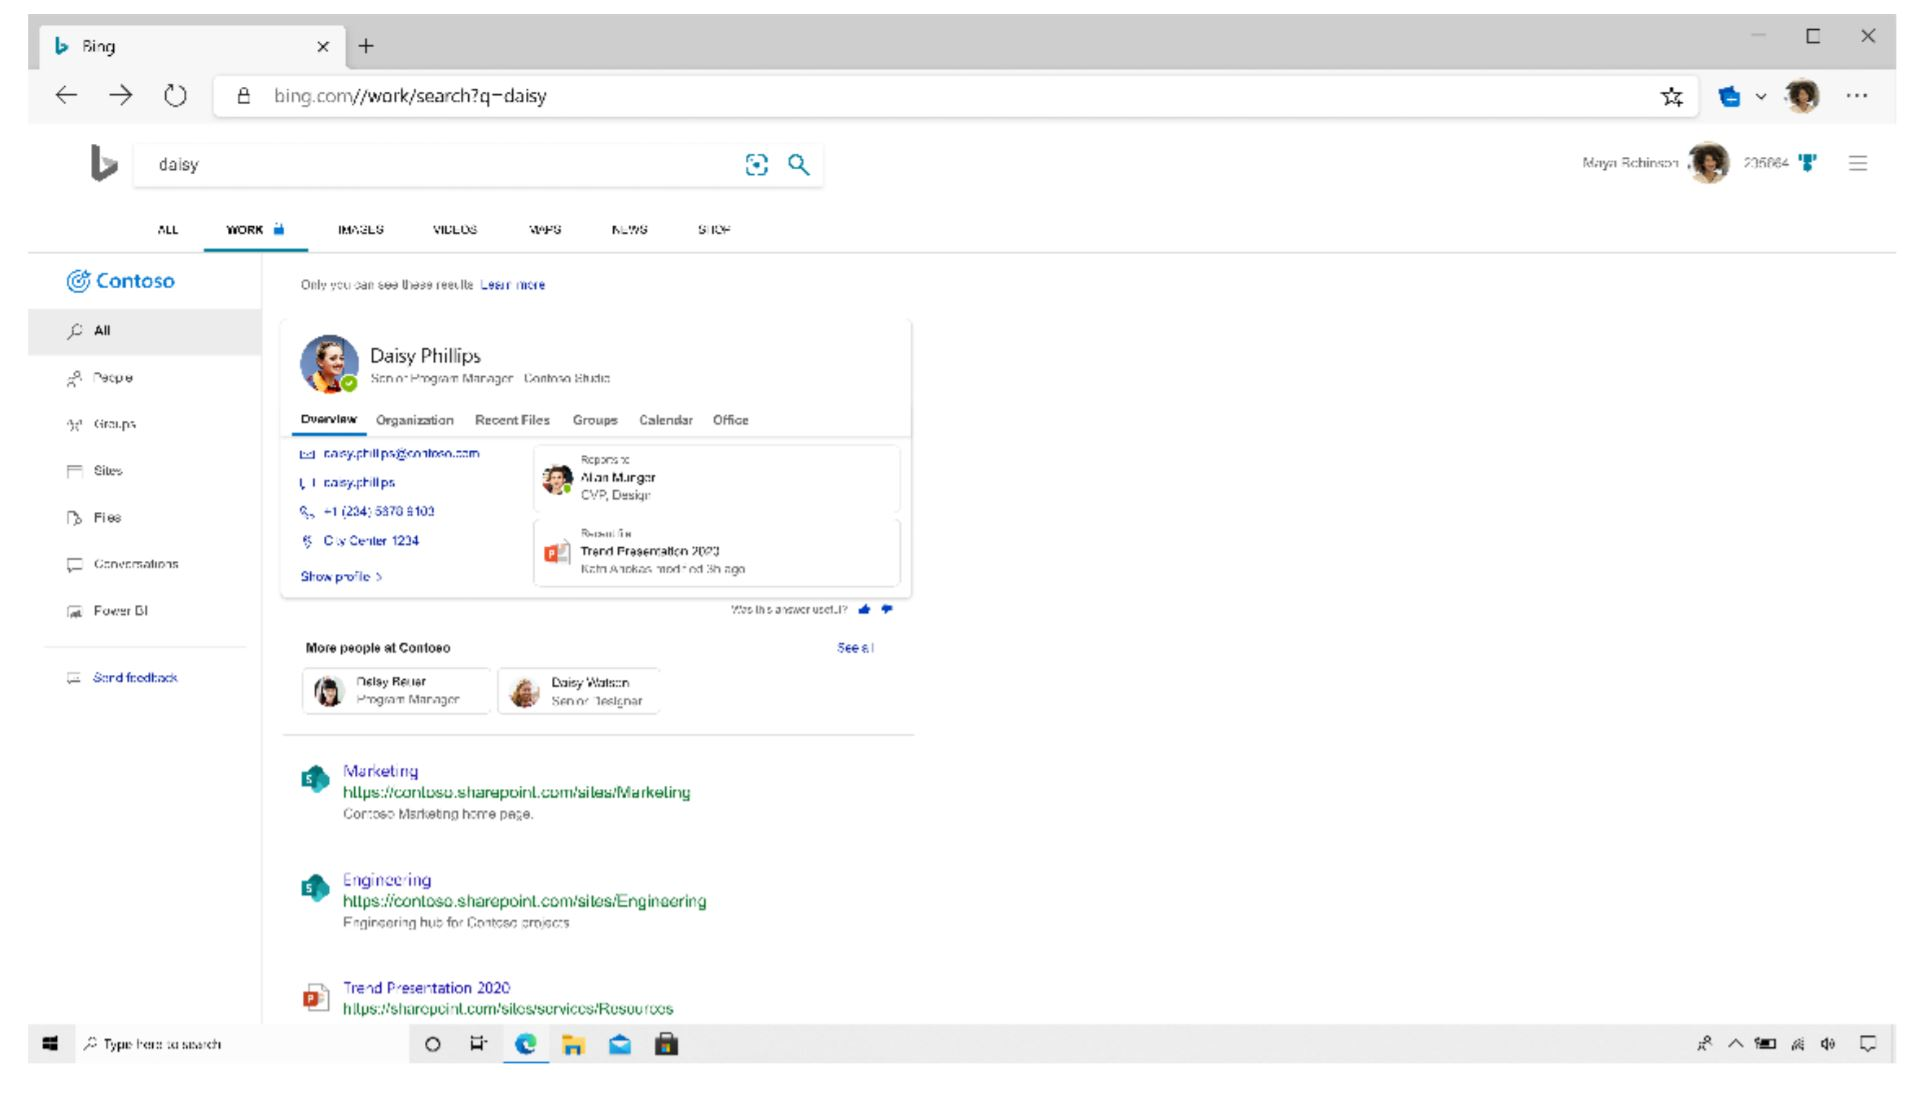 Bing work page